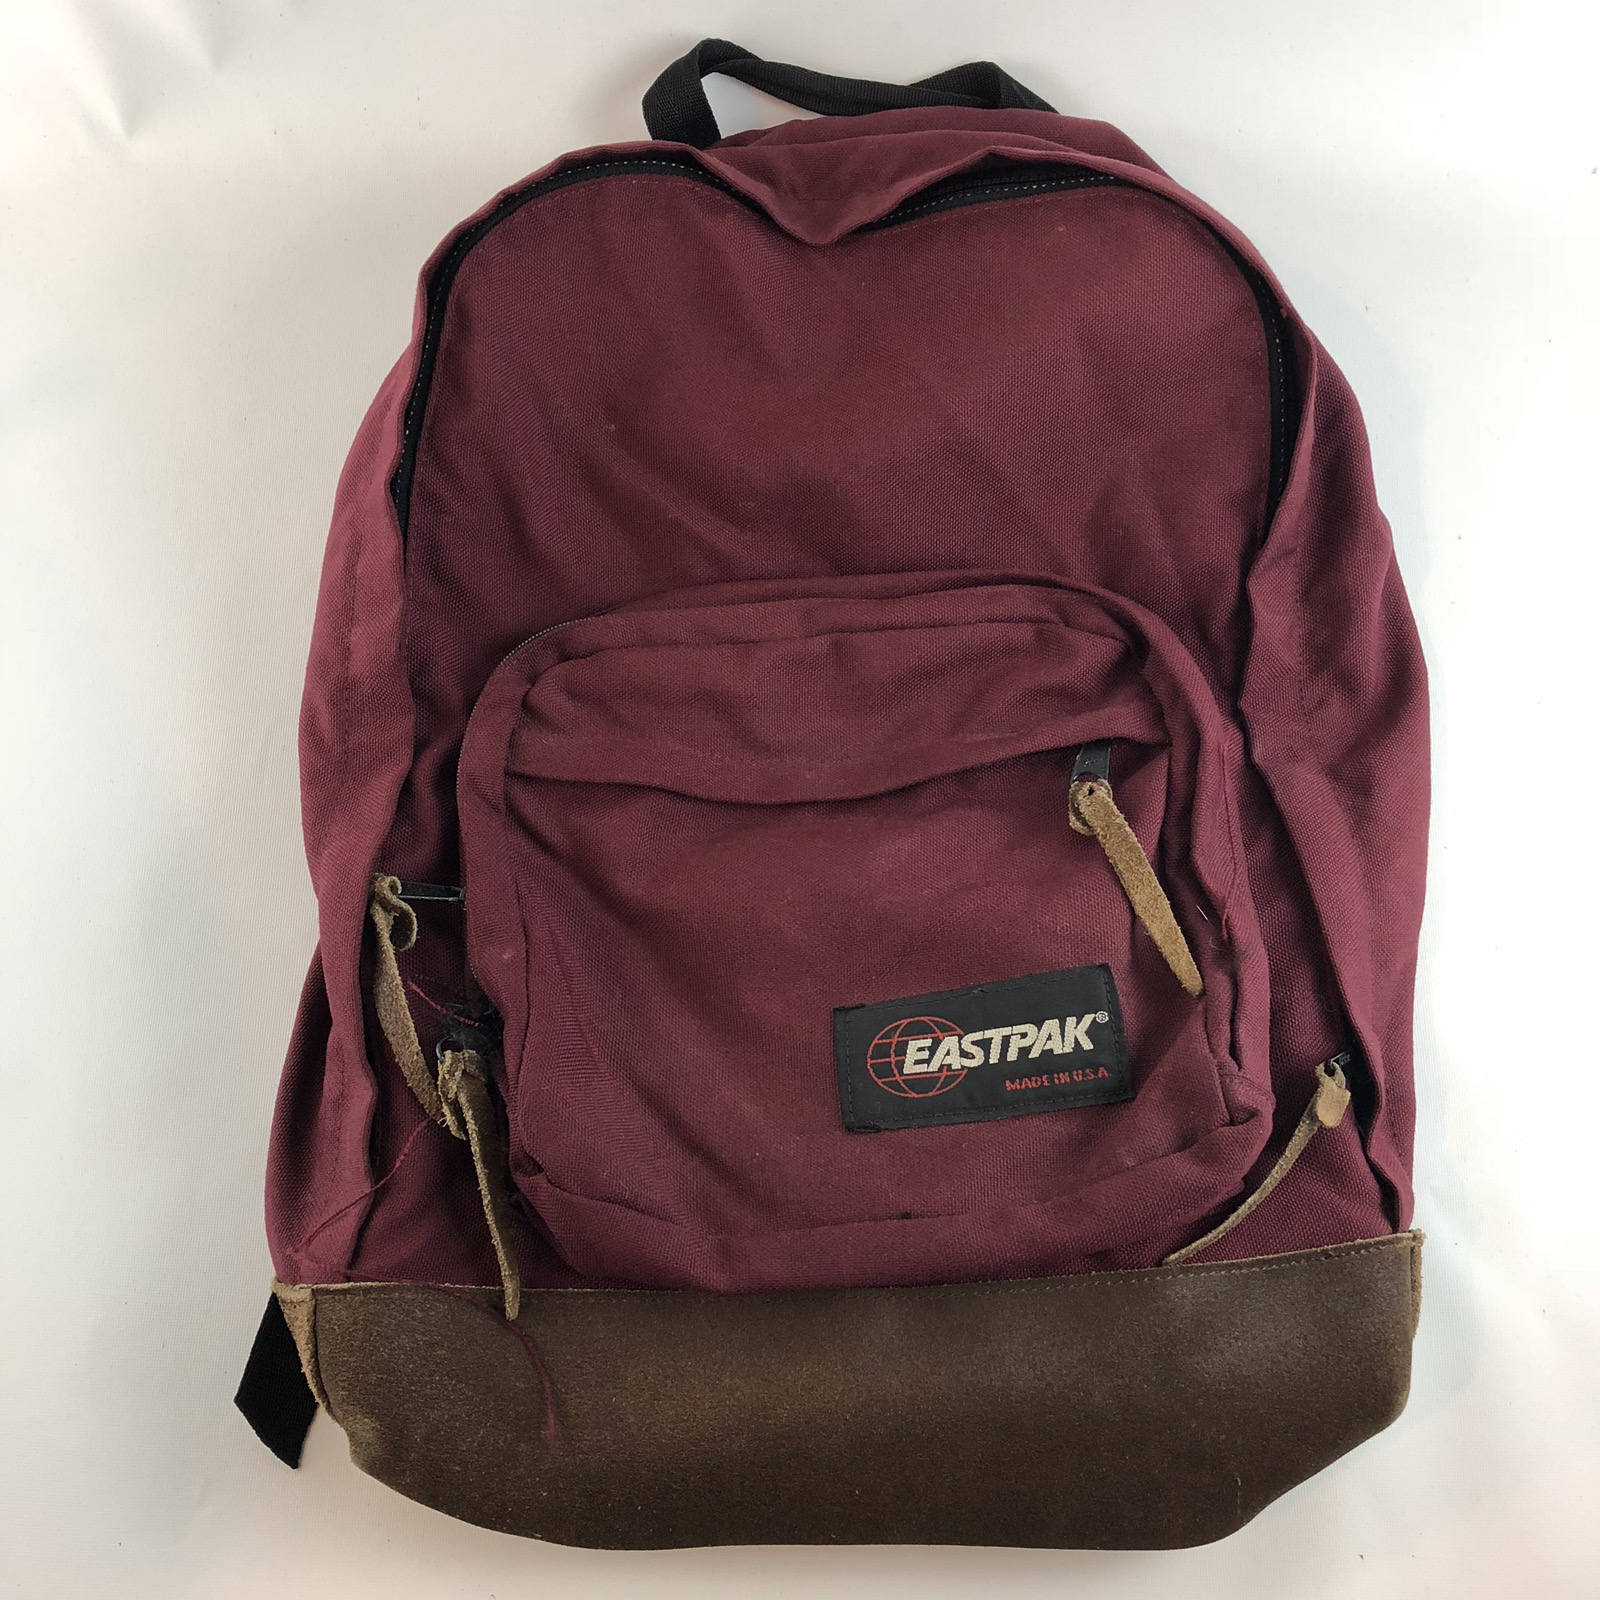 942a9feead3d Vintage Eastpak Maroon Red Backpack Similar To Back To The Future Marty 0